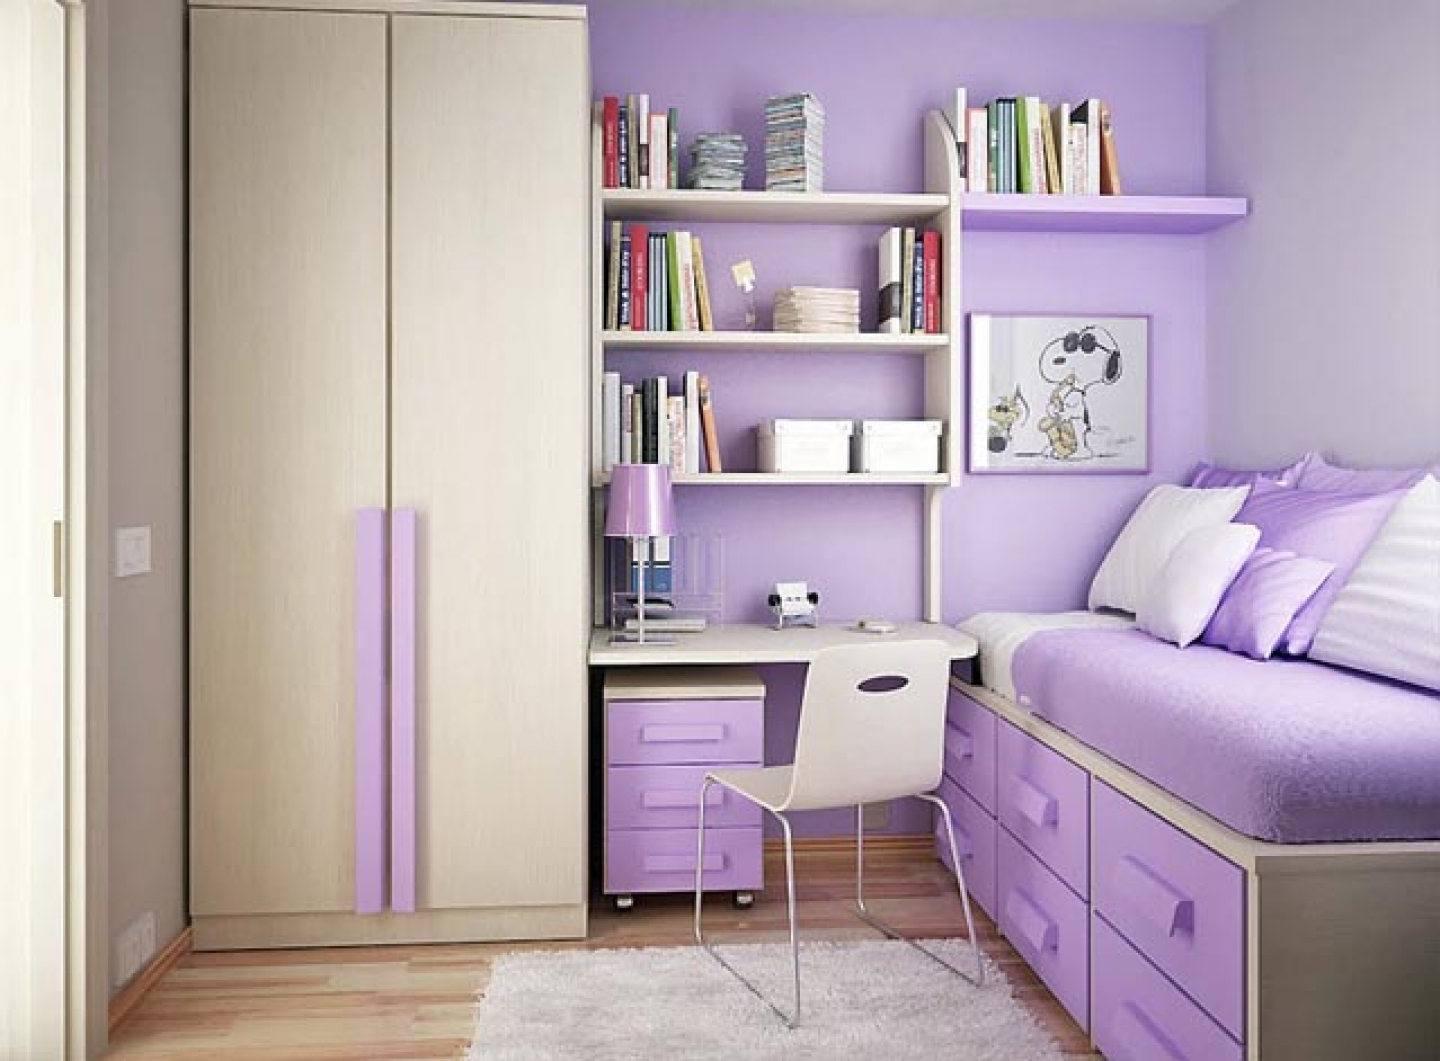 Girl Bedroom Ideas For Small Bedrooms girl bedroom ideas for small bedrooms - large and beautiful photos